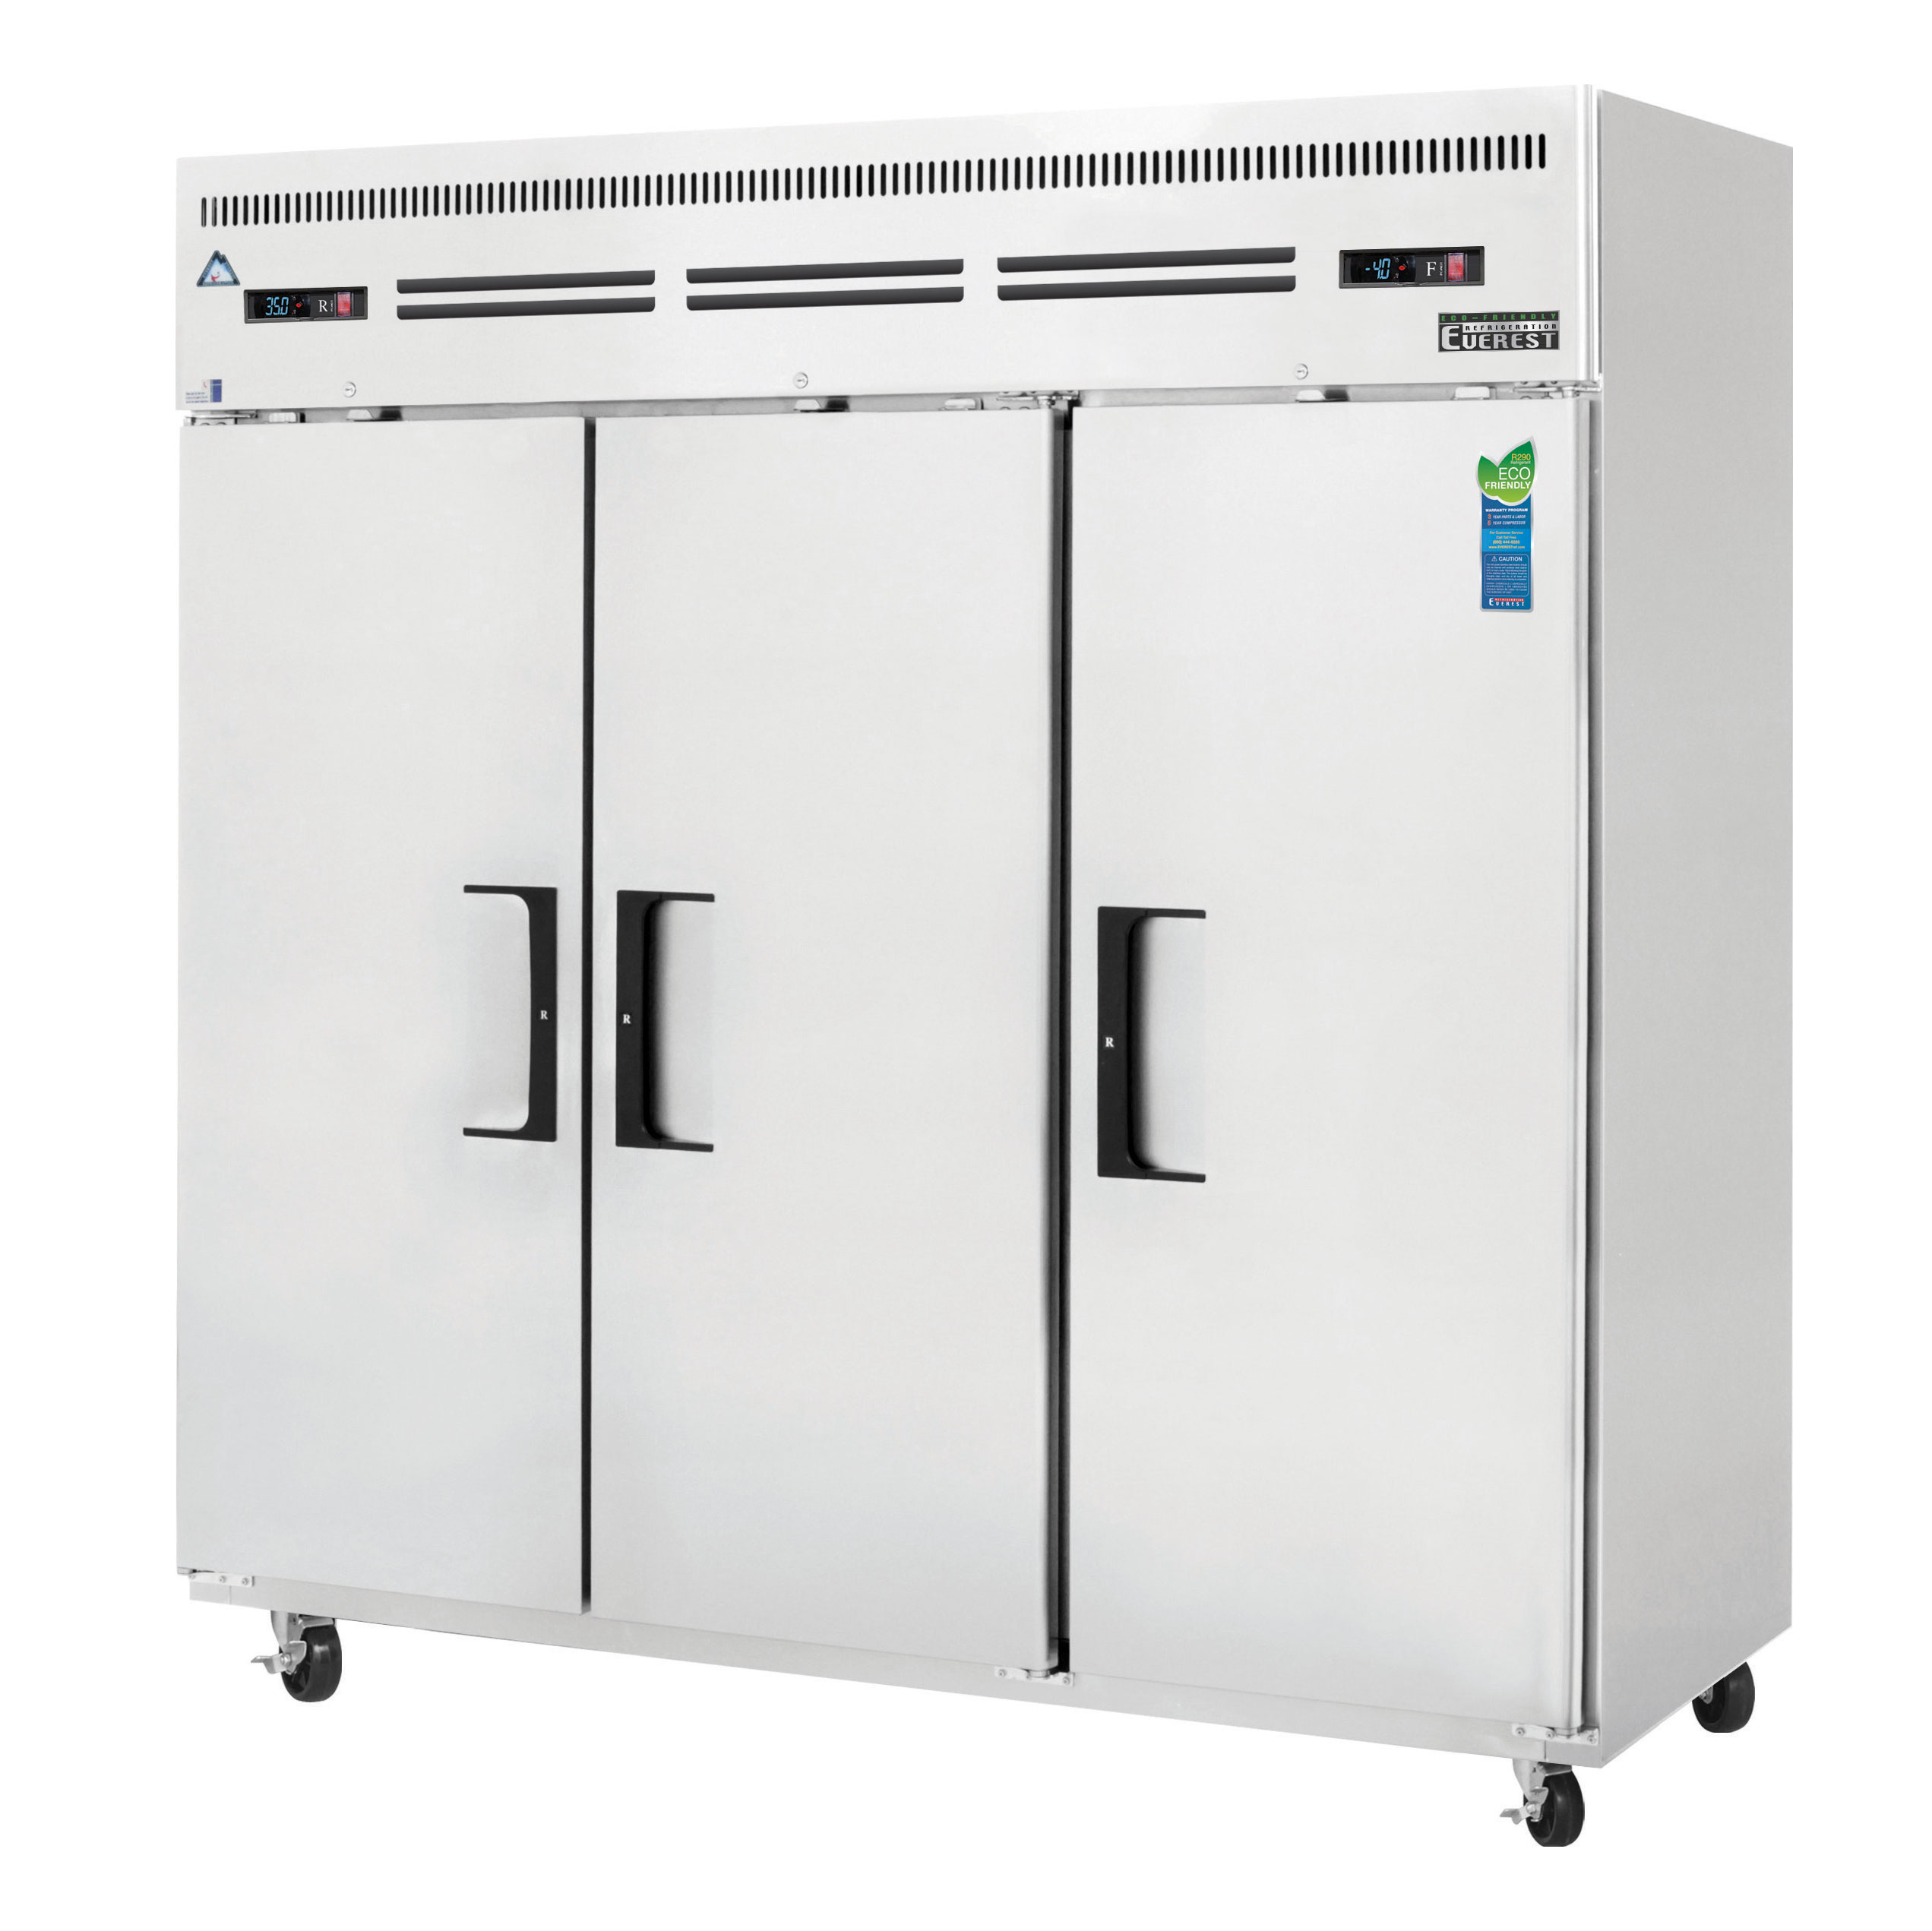 Everest Refrigeration ESRF3 refrigerator freezer, reach-in